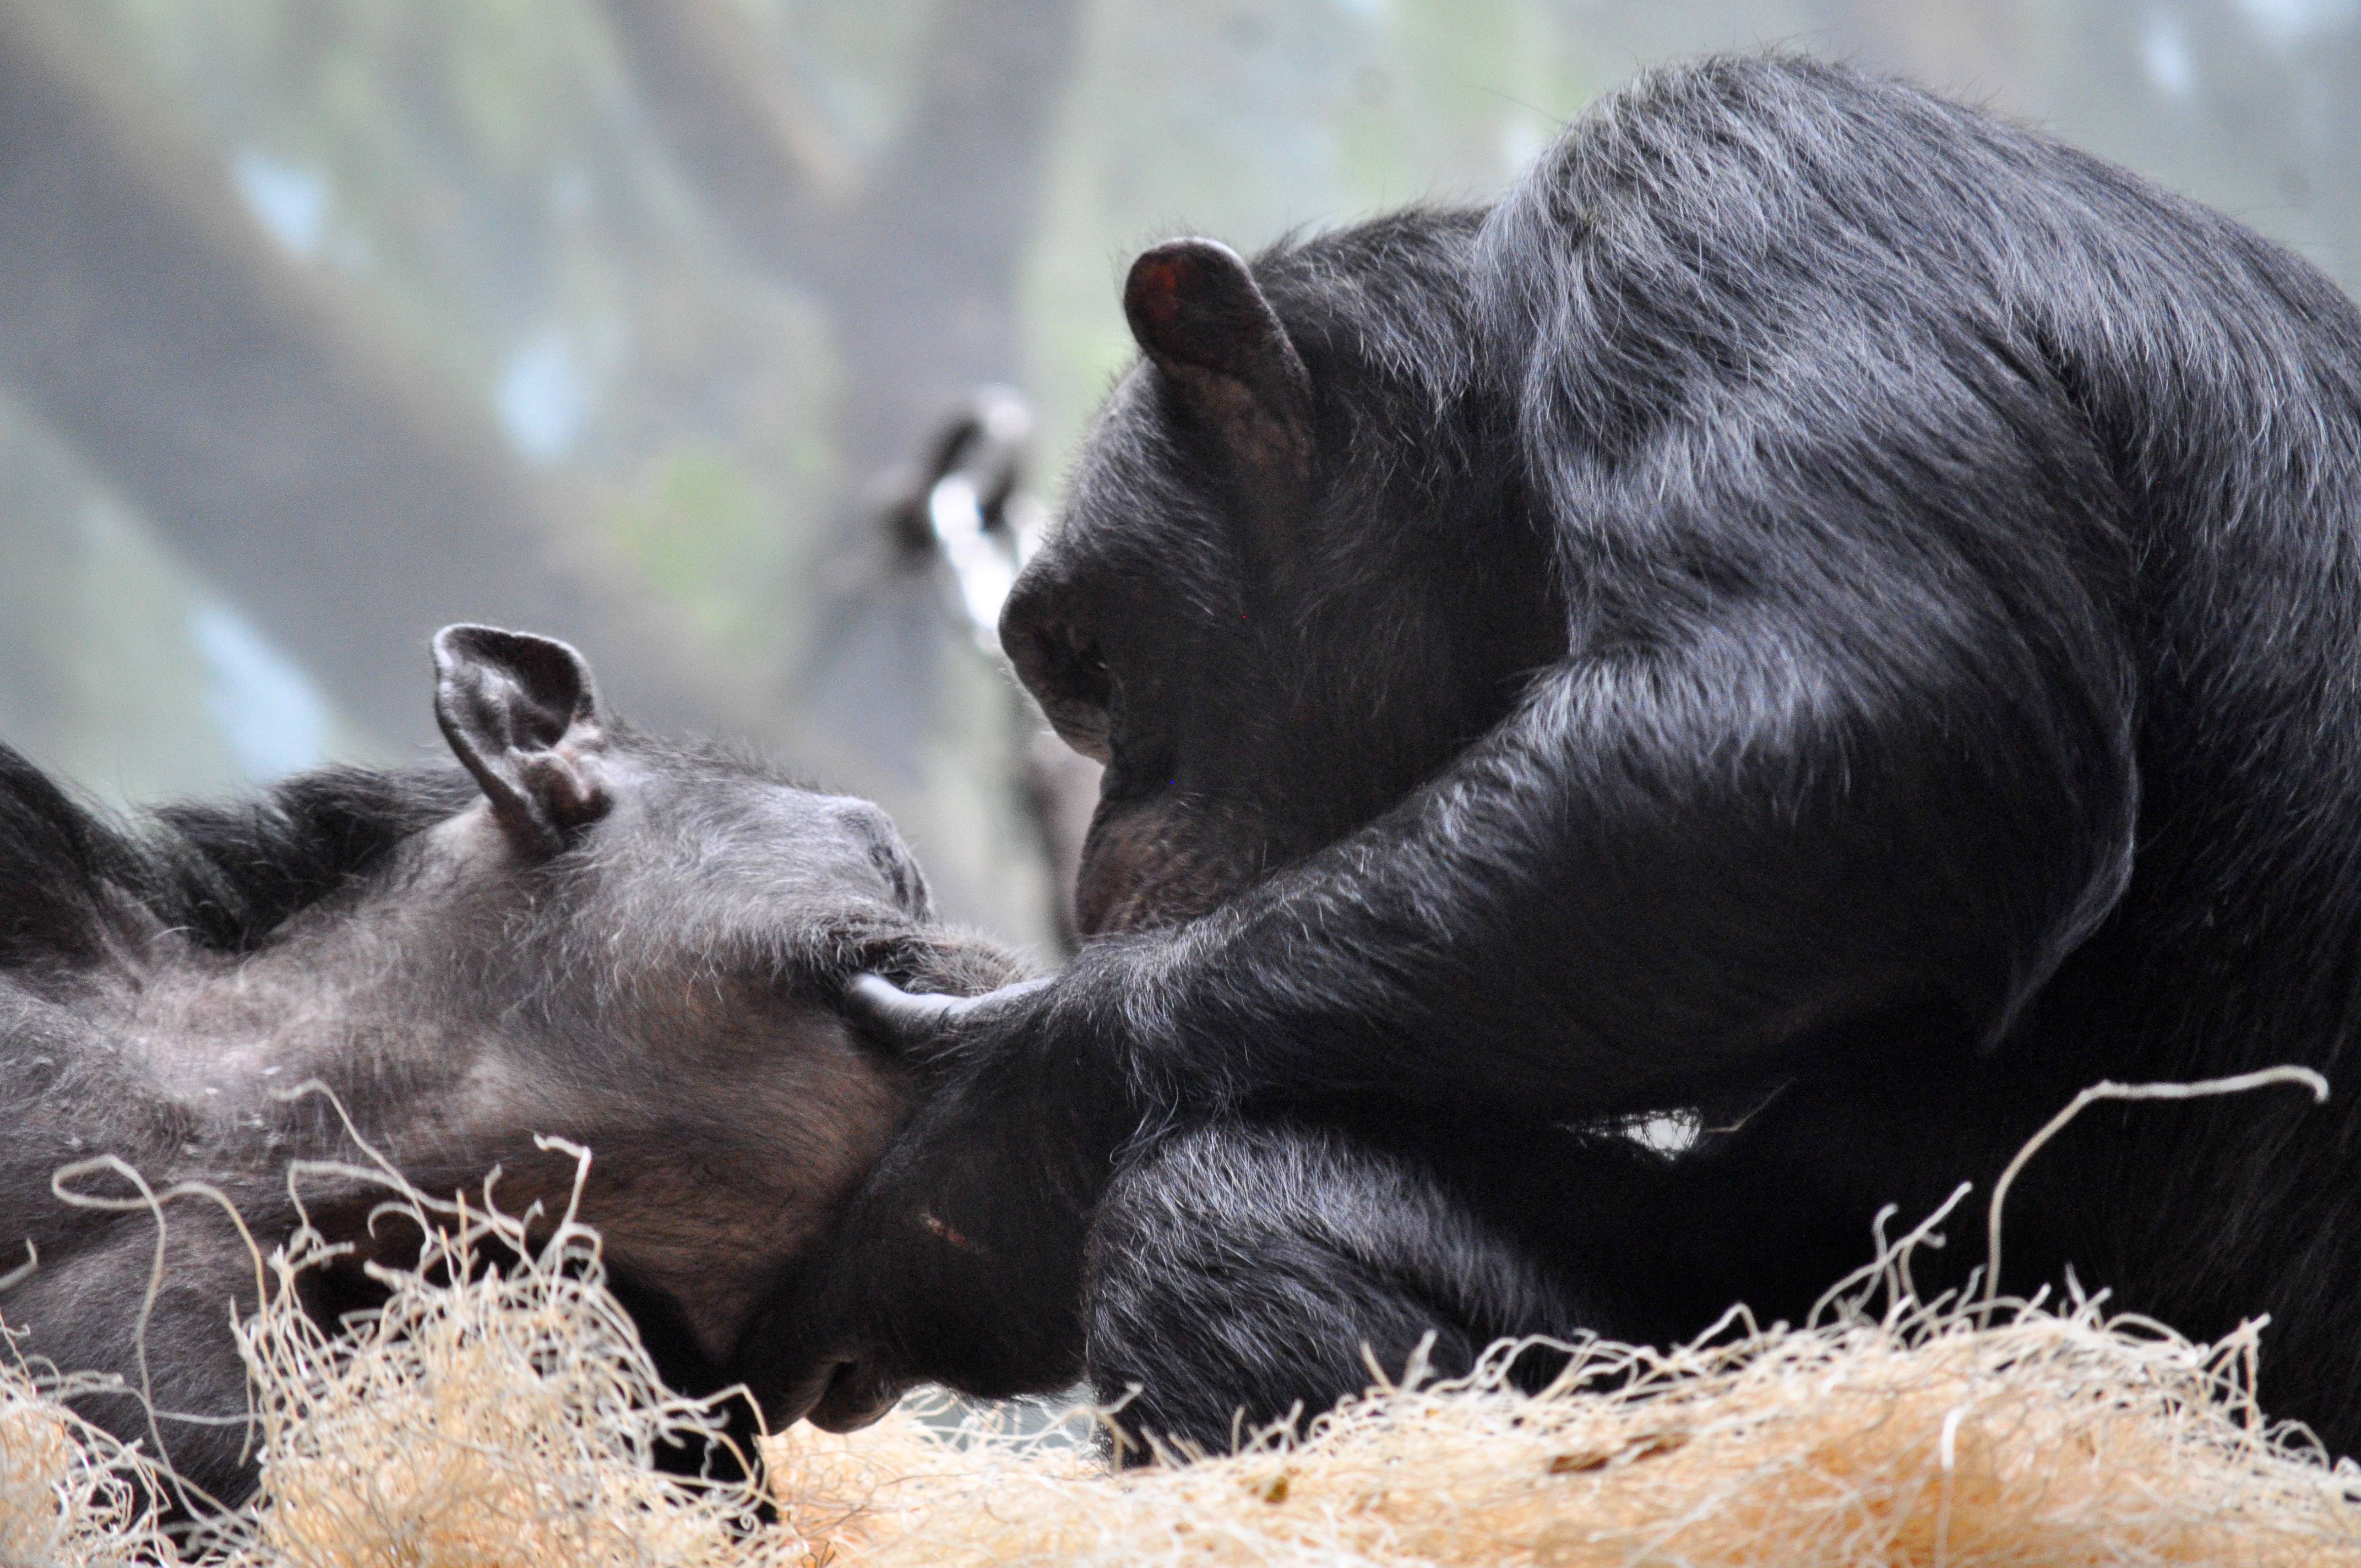 Two chimpanzee's comfort each other at Lincoln Park Zoo in Chicago.